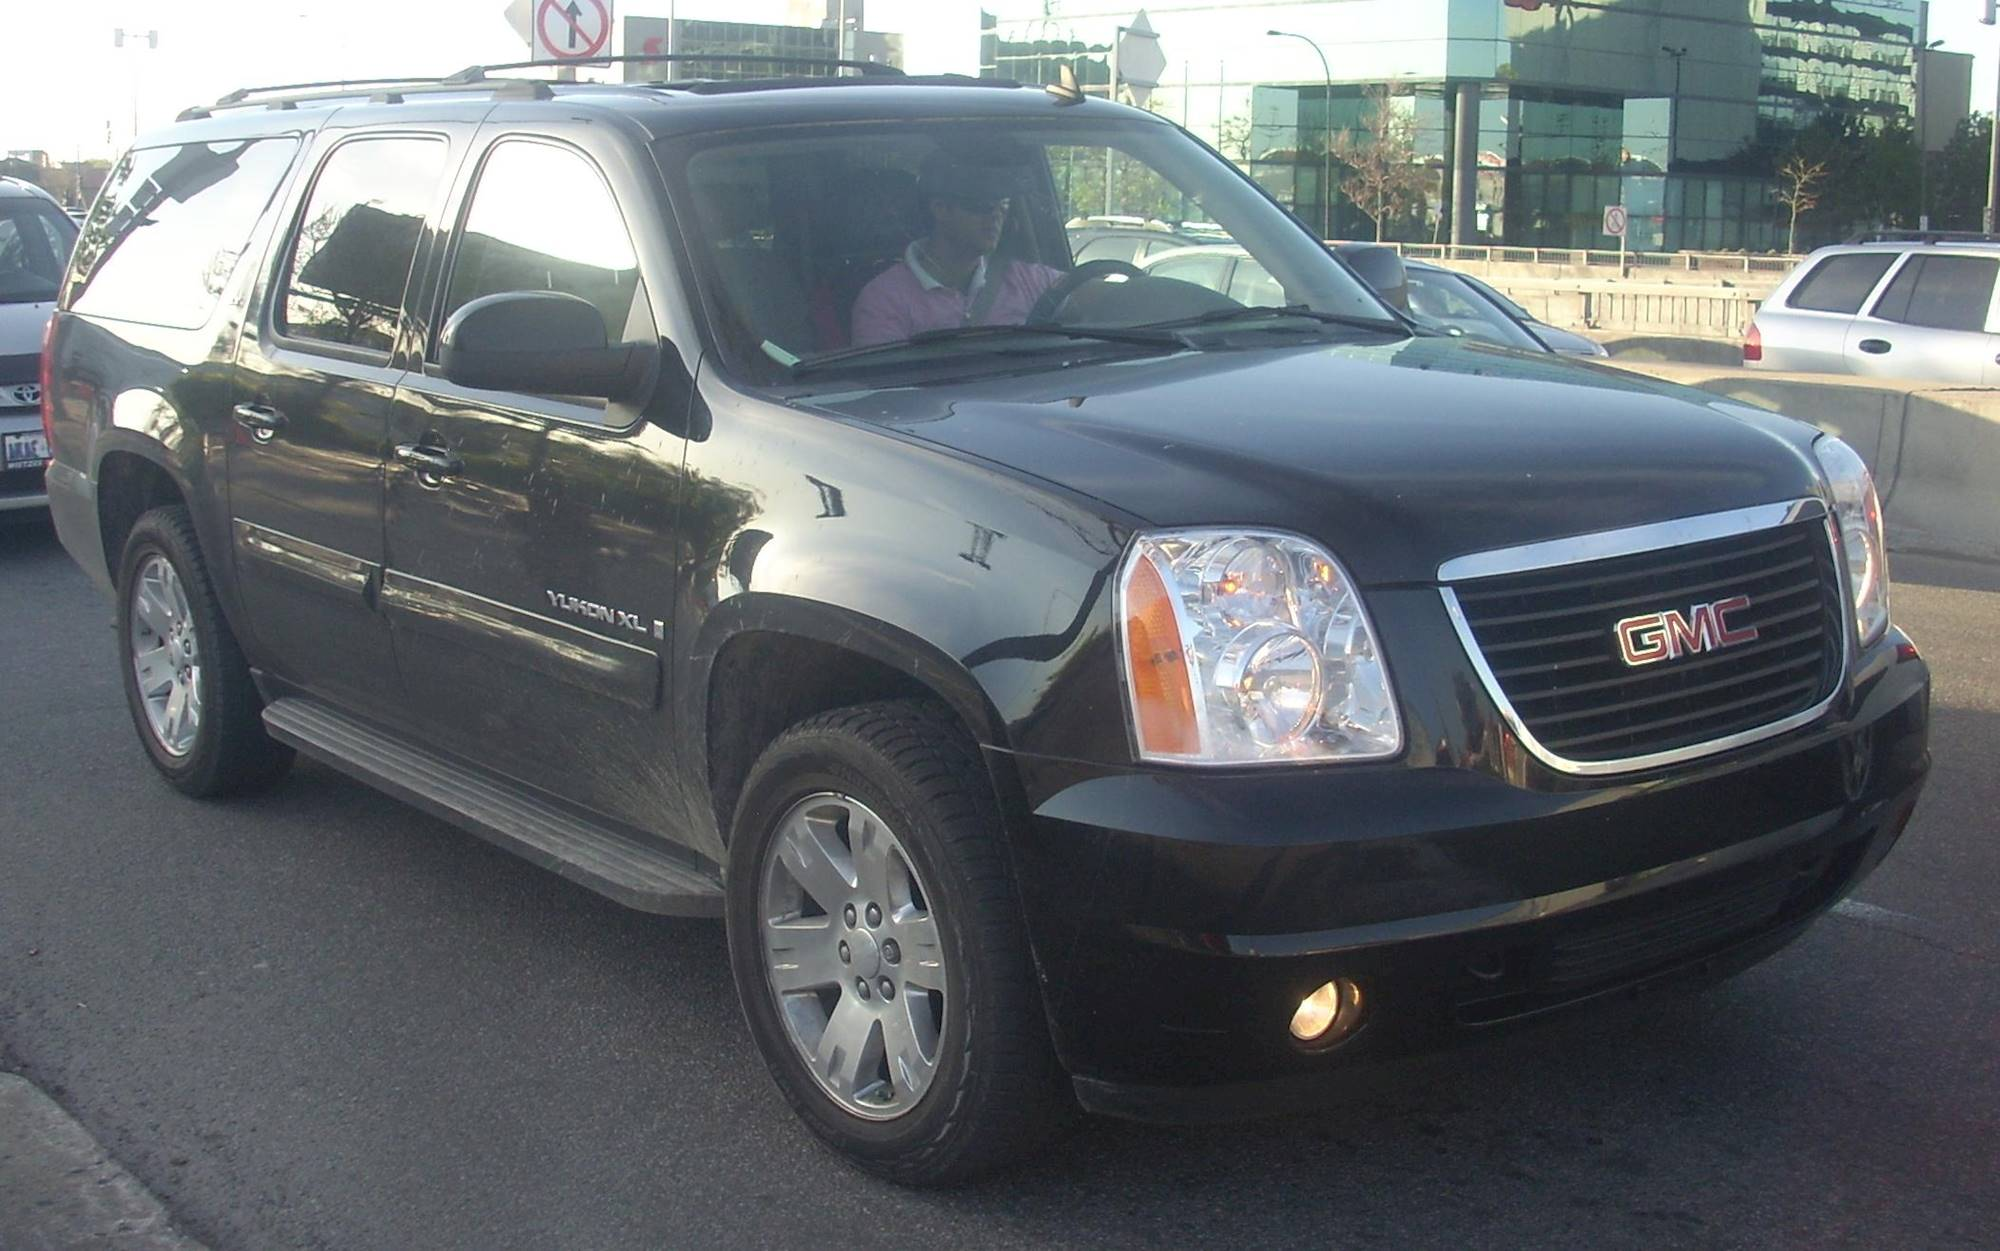 2007 gmc yukon slt w 4sa 4x2 4 spd auto w od. Black Bedroom Furniture Sets. Home Design Ideas